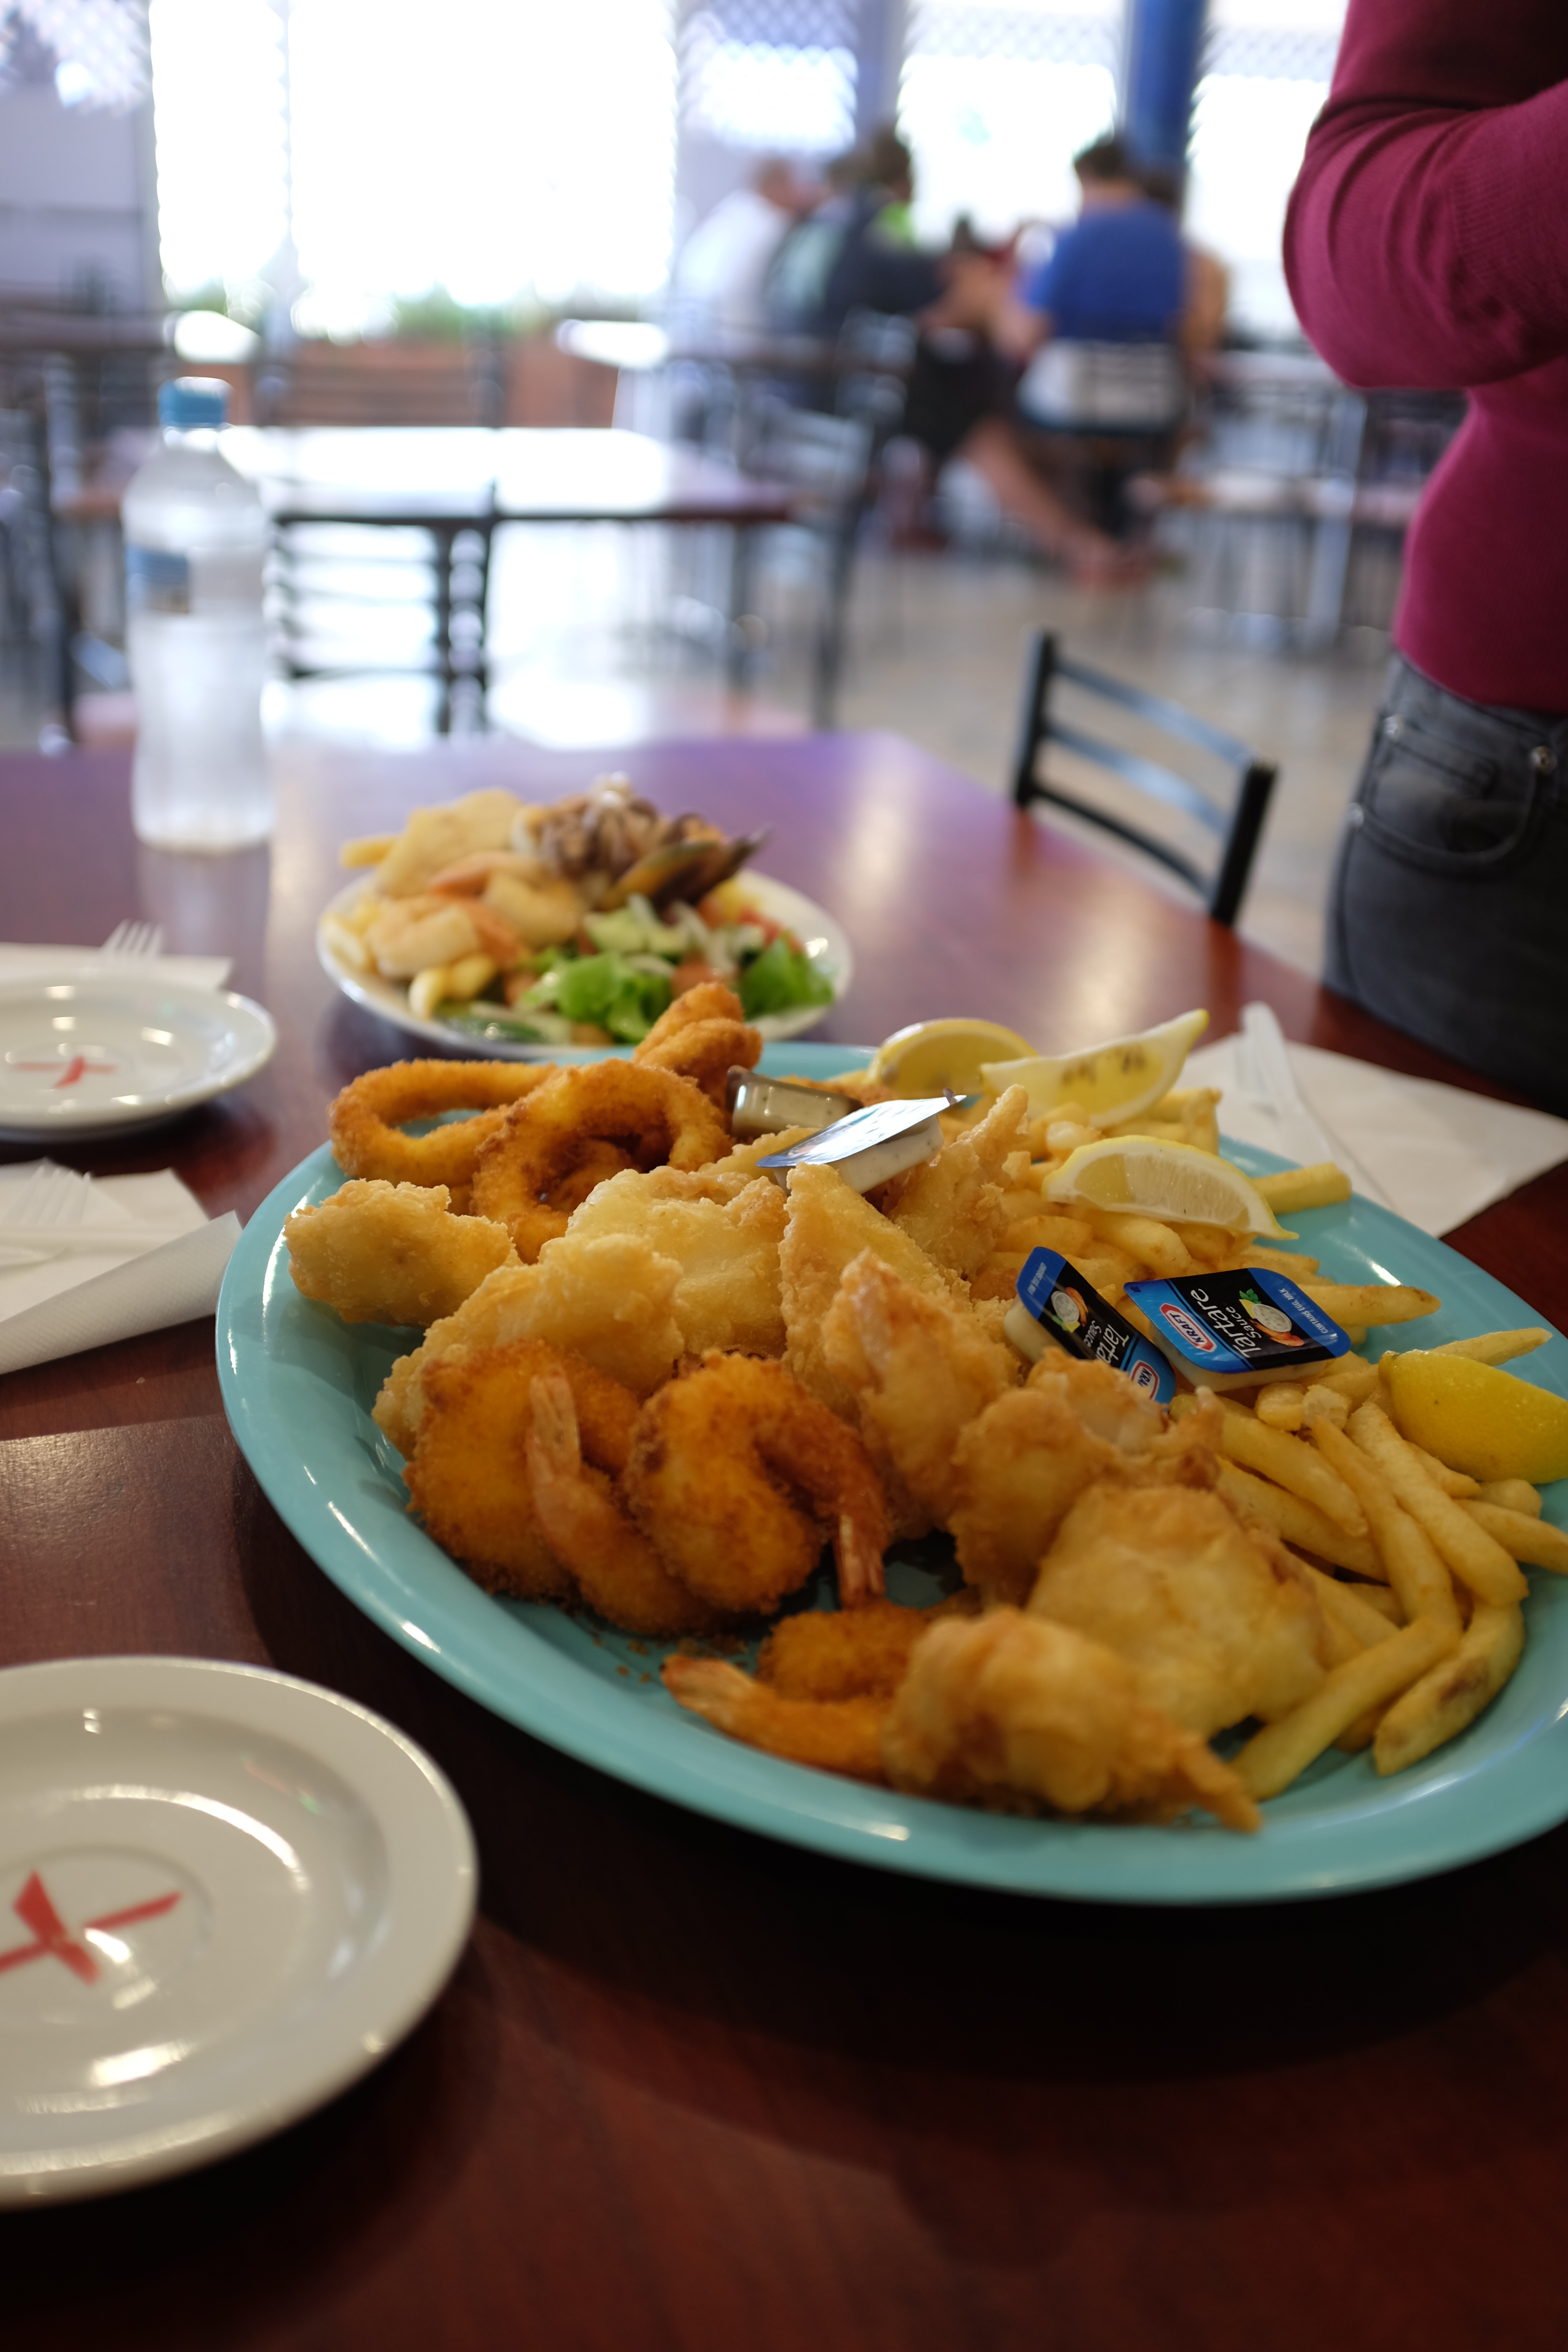 Family seafood platter and grilled seafood platter for lunch!